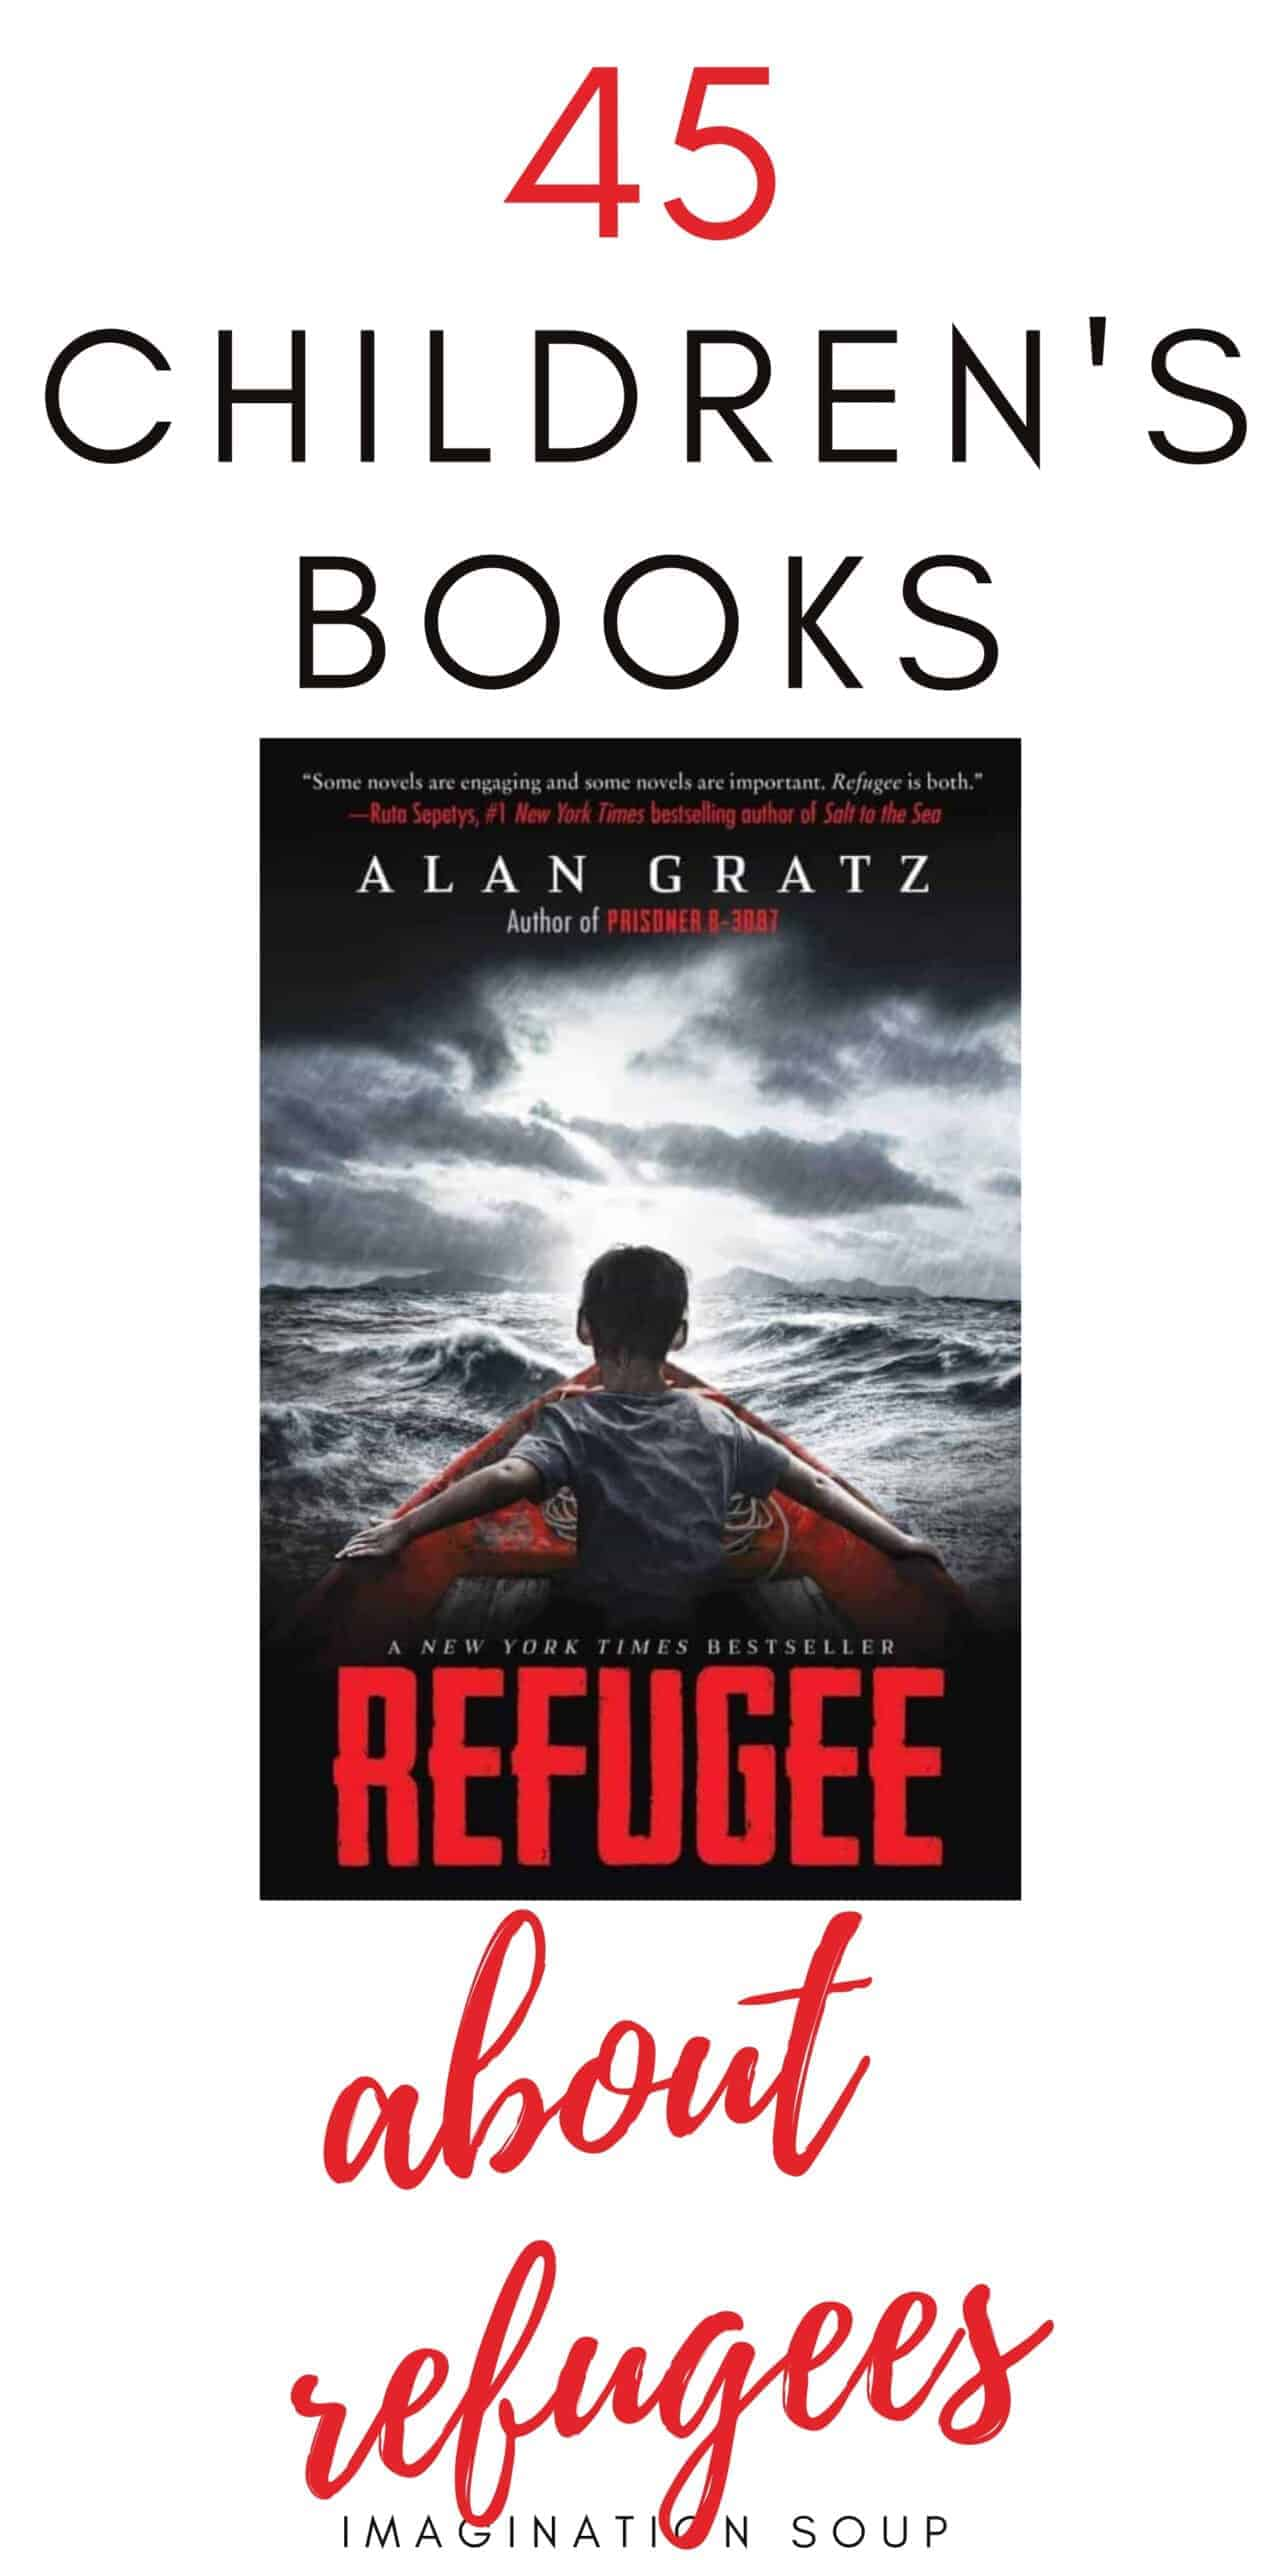 children's books about immigration and refugees